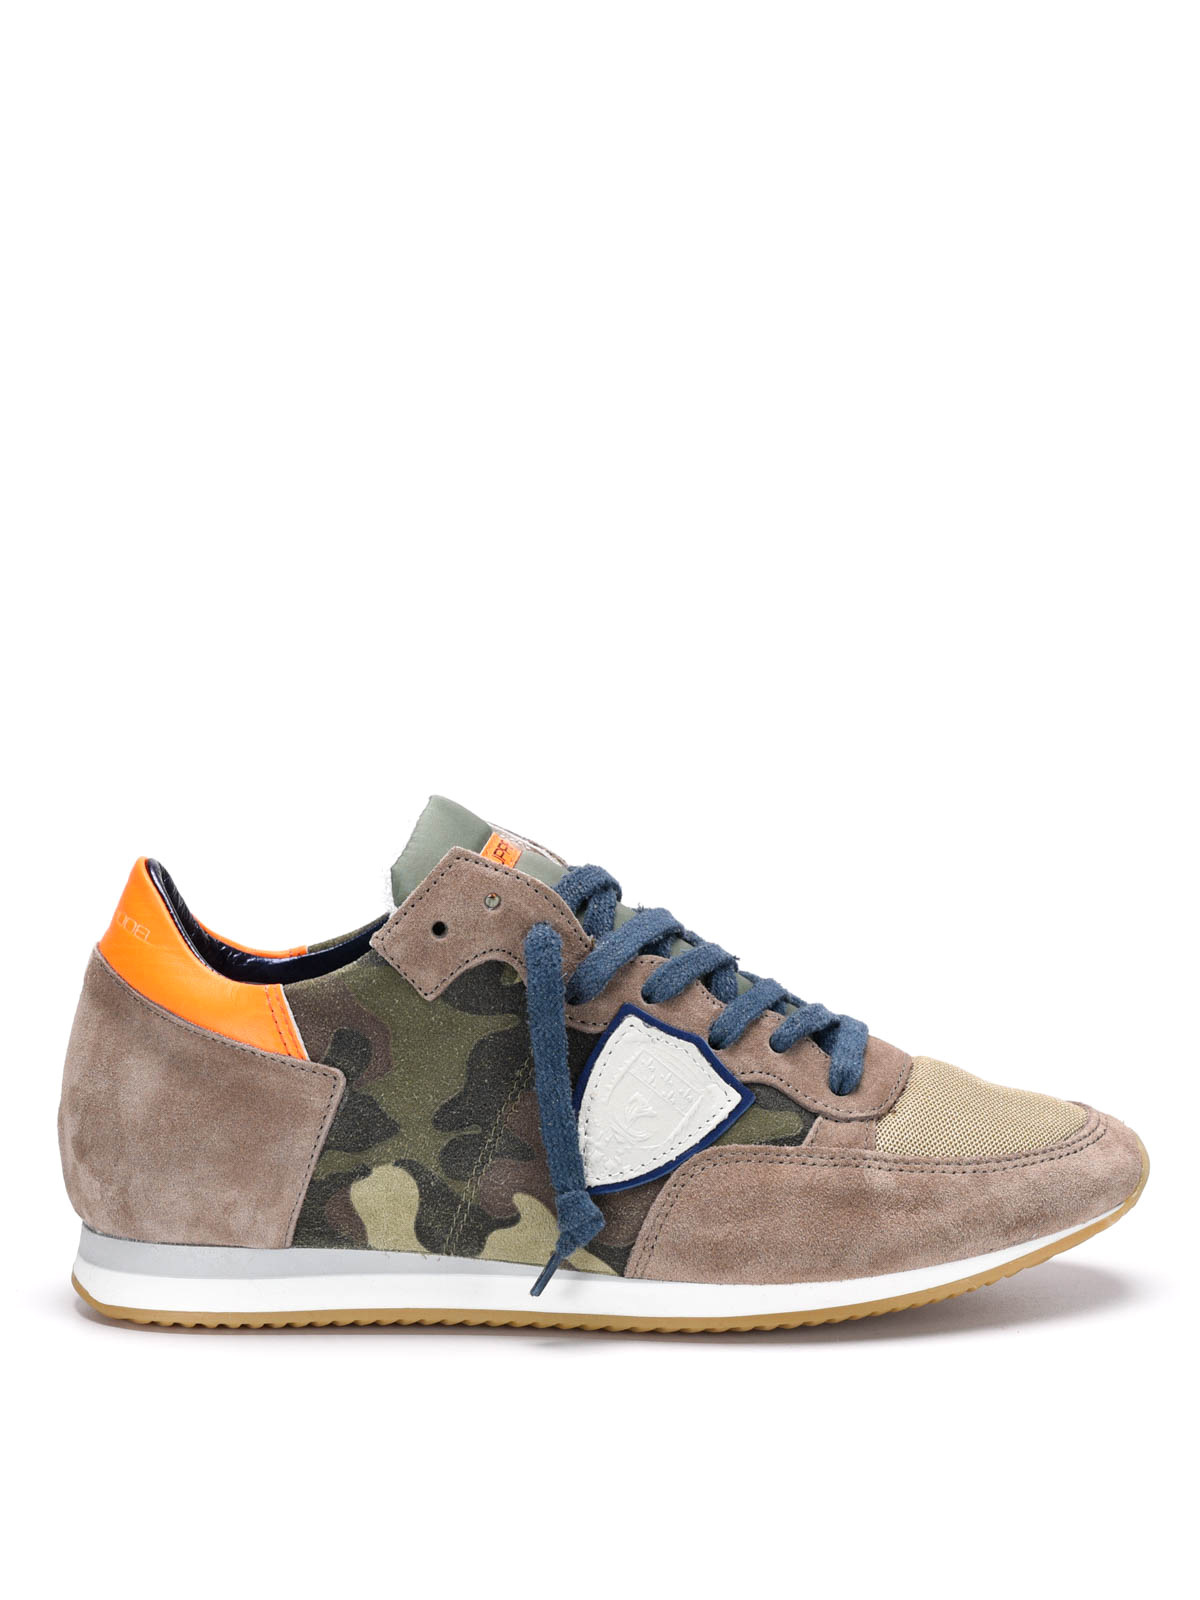 tropez camouflage sneakers by philippe model trainers ikrix. Black Bedroom Furniture Sets. Home Design Ideas